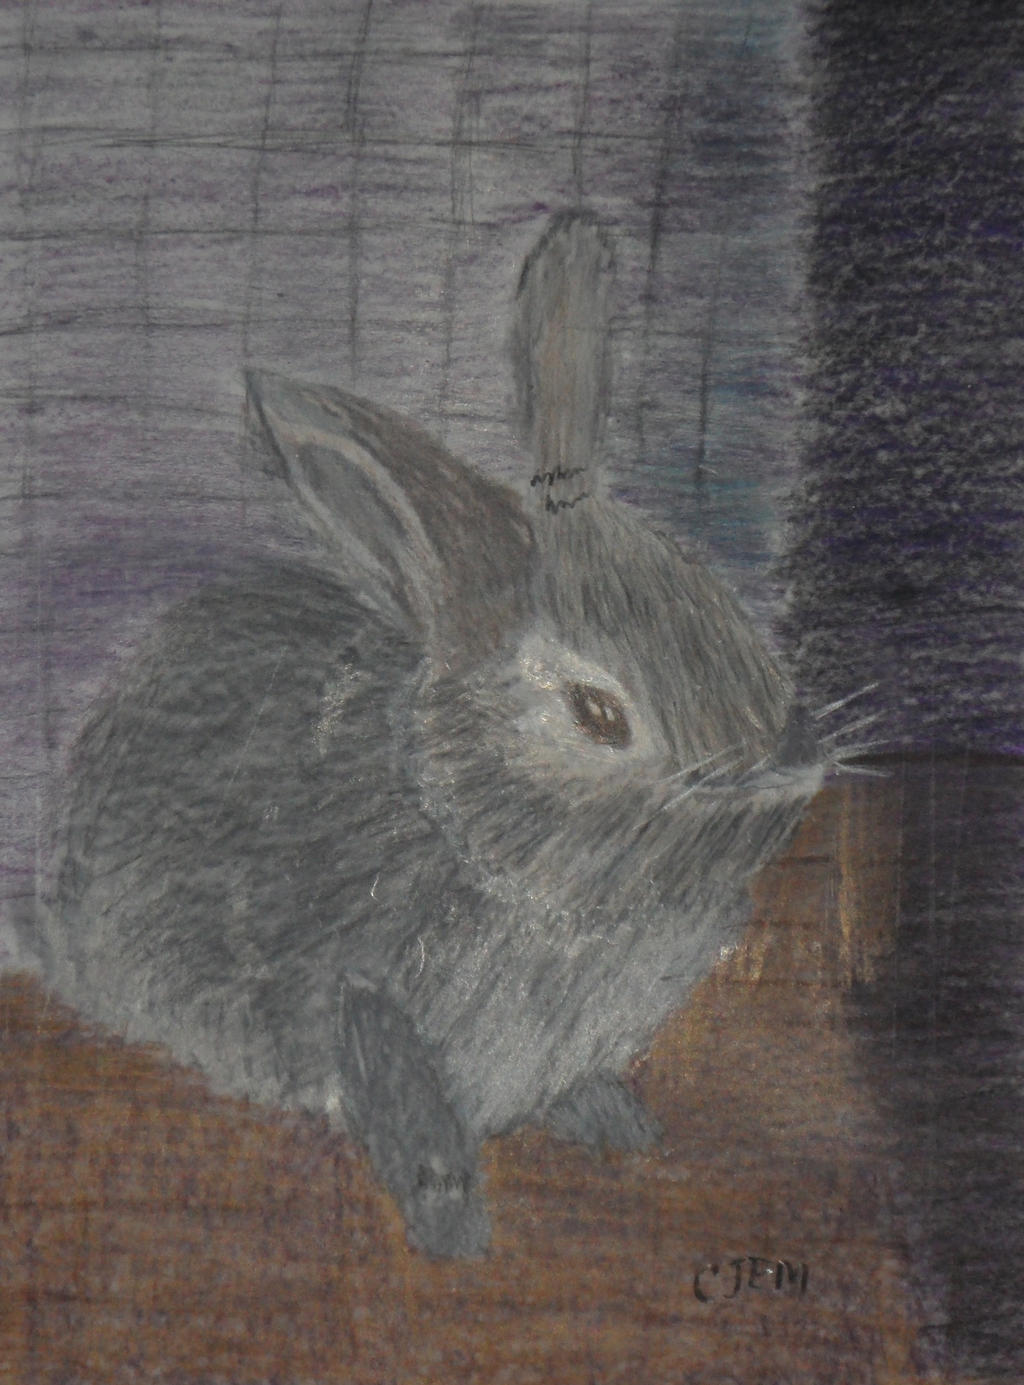 Sam 0976  bunny in colored pencil by ca1jem on DeviantArt